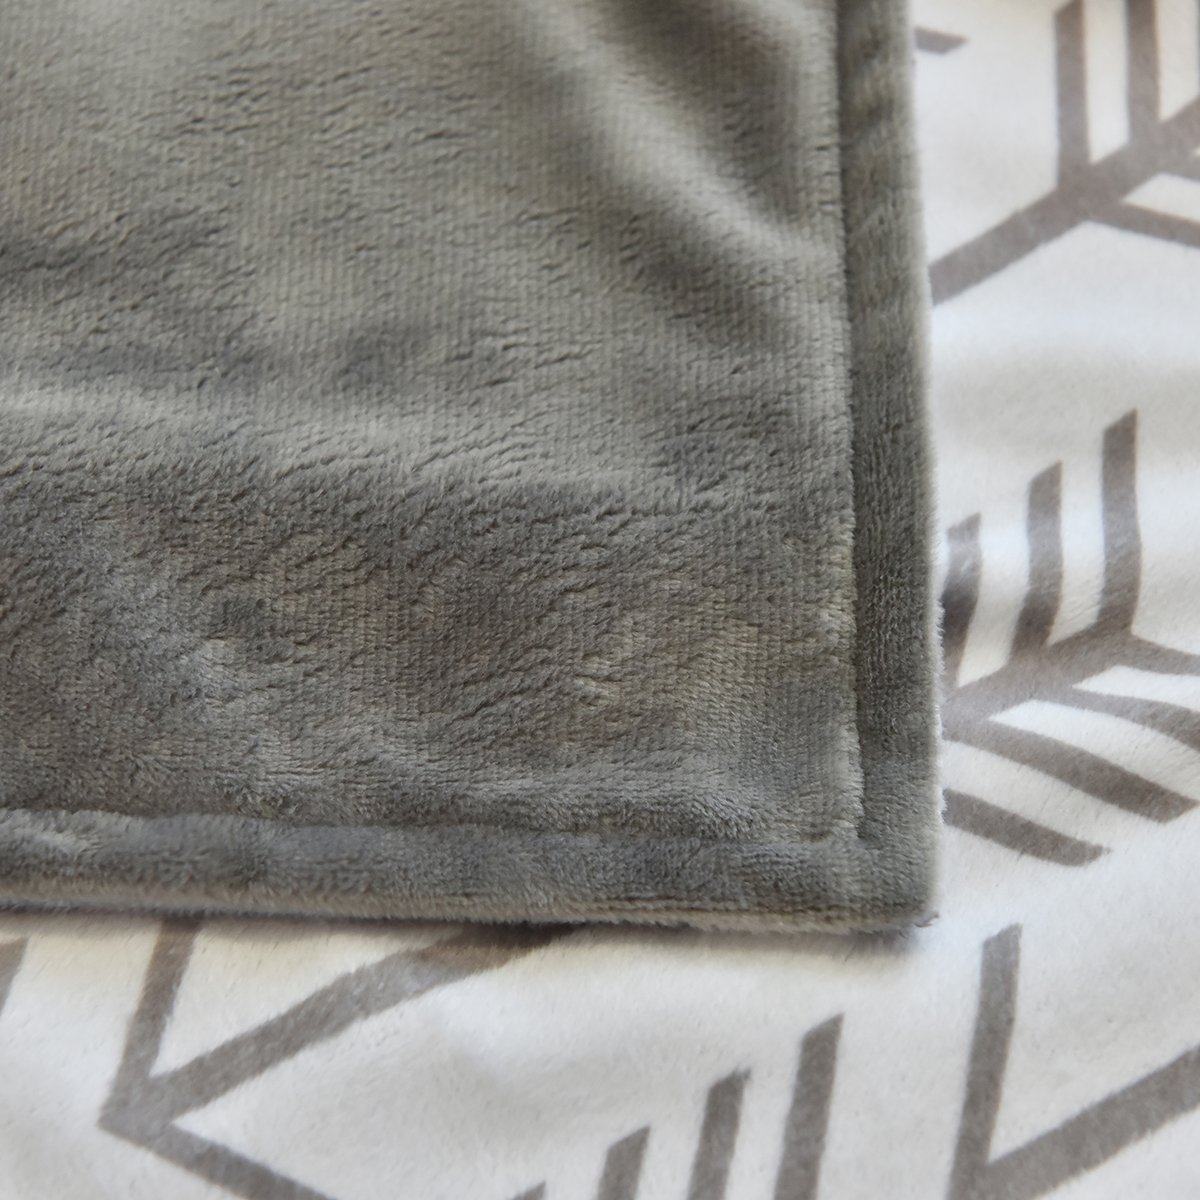 Towin Baby Arrow Minky Double Layer Receiving Blanket Black 30x30 /…